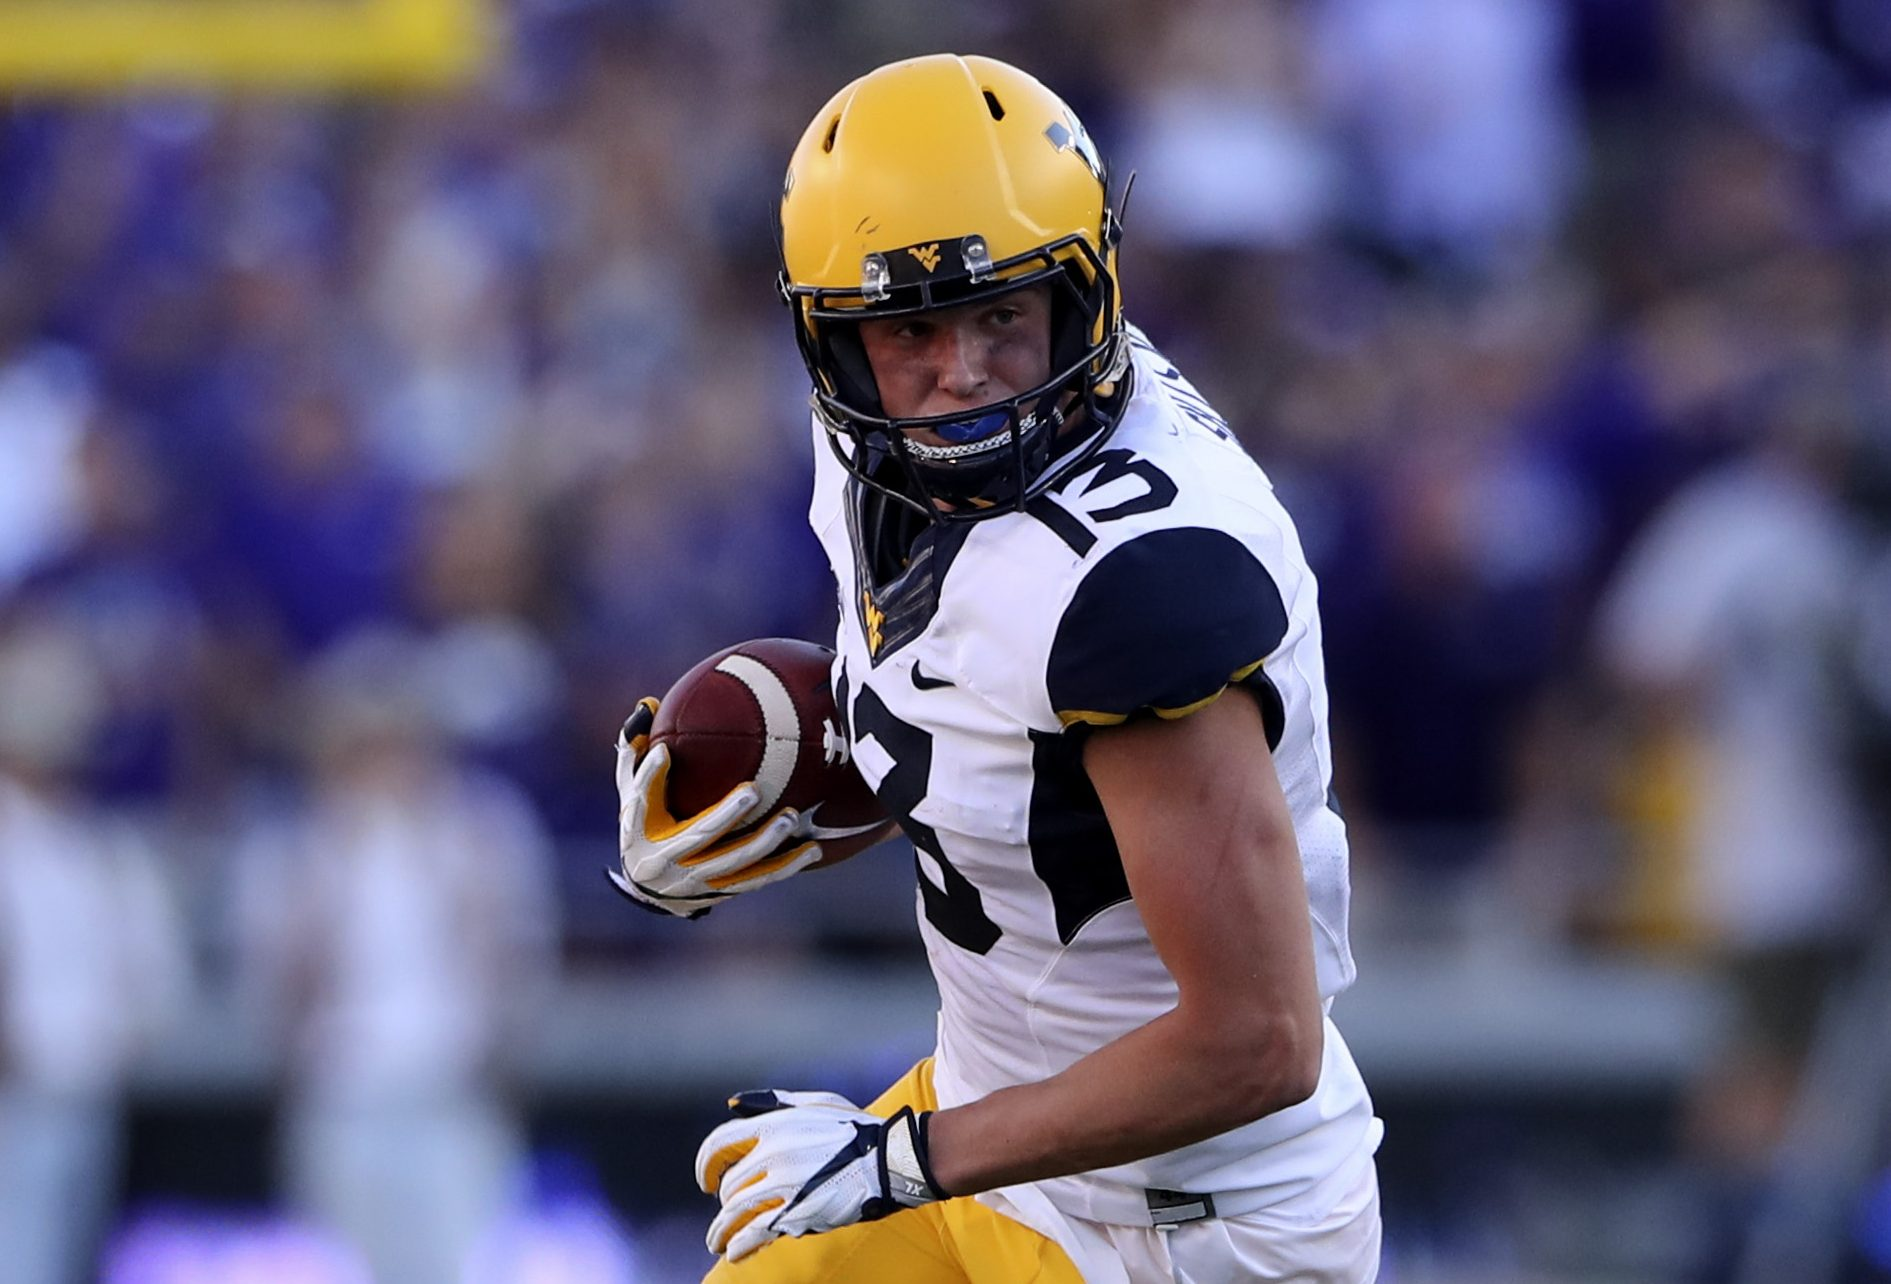 WVU's Sills Leads The Nation In Receiving TDs